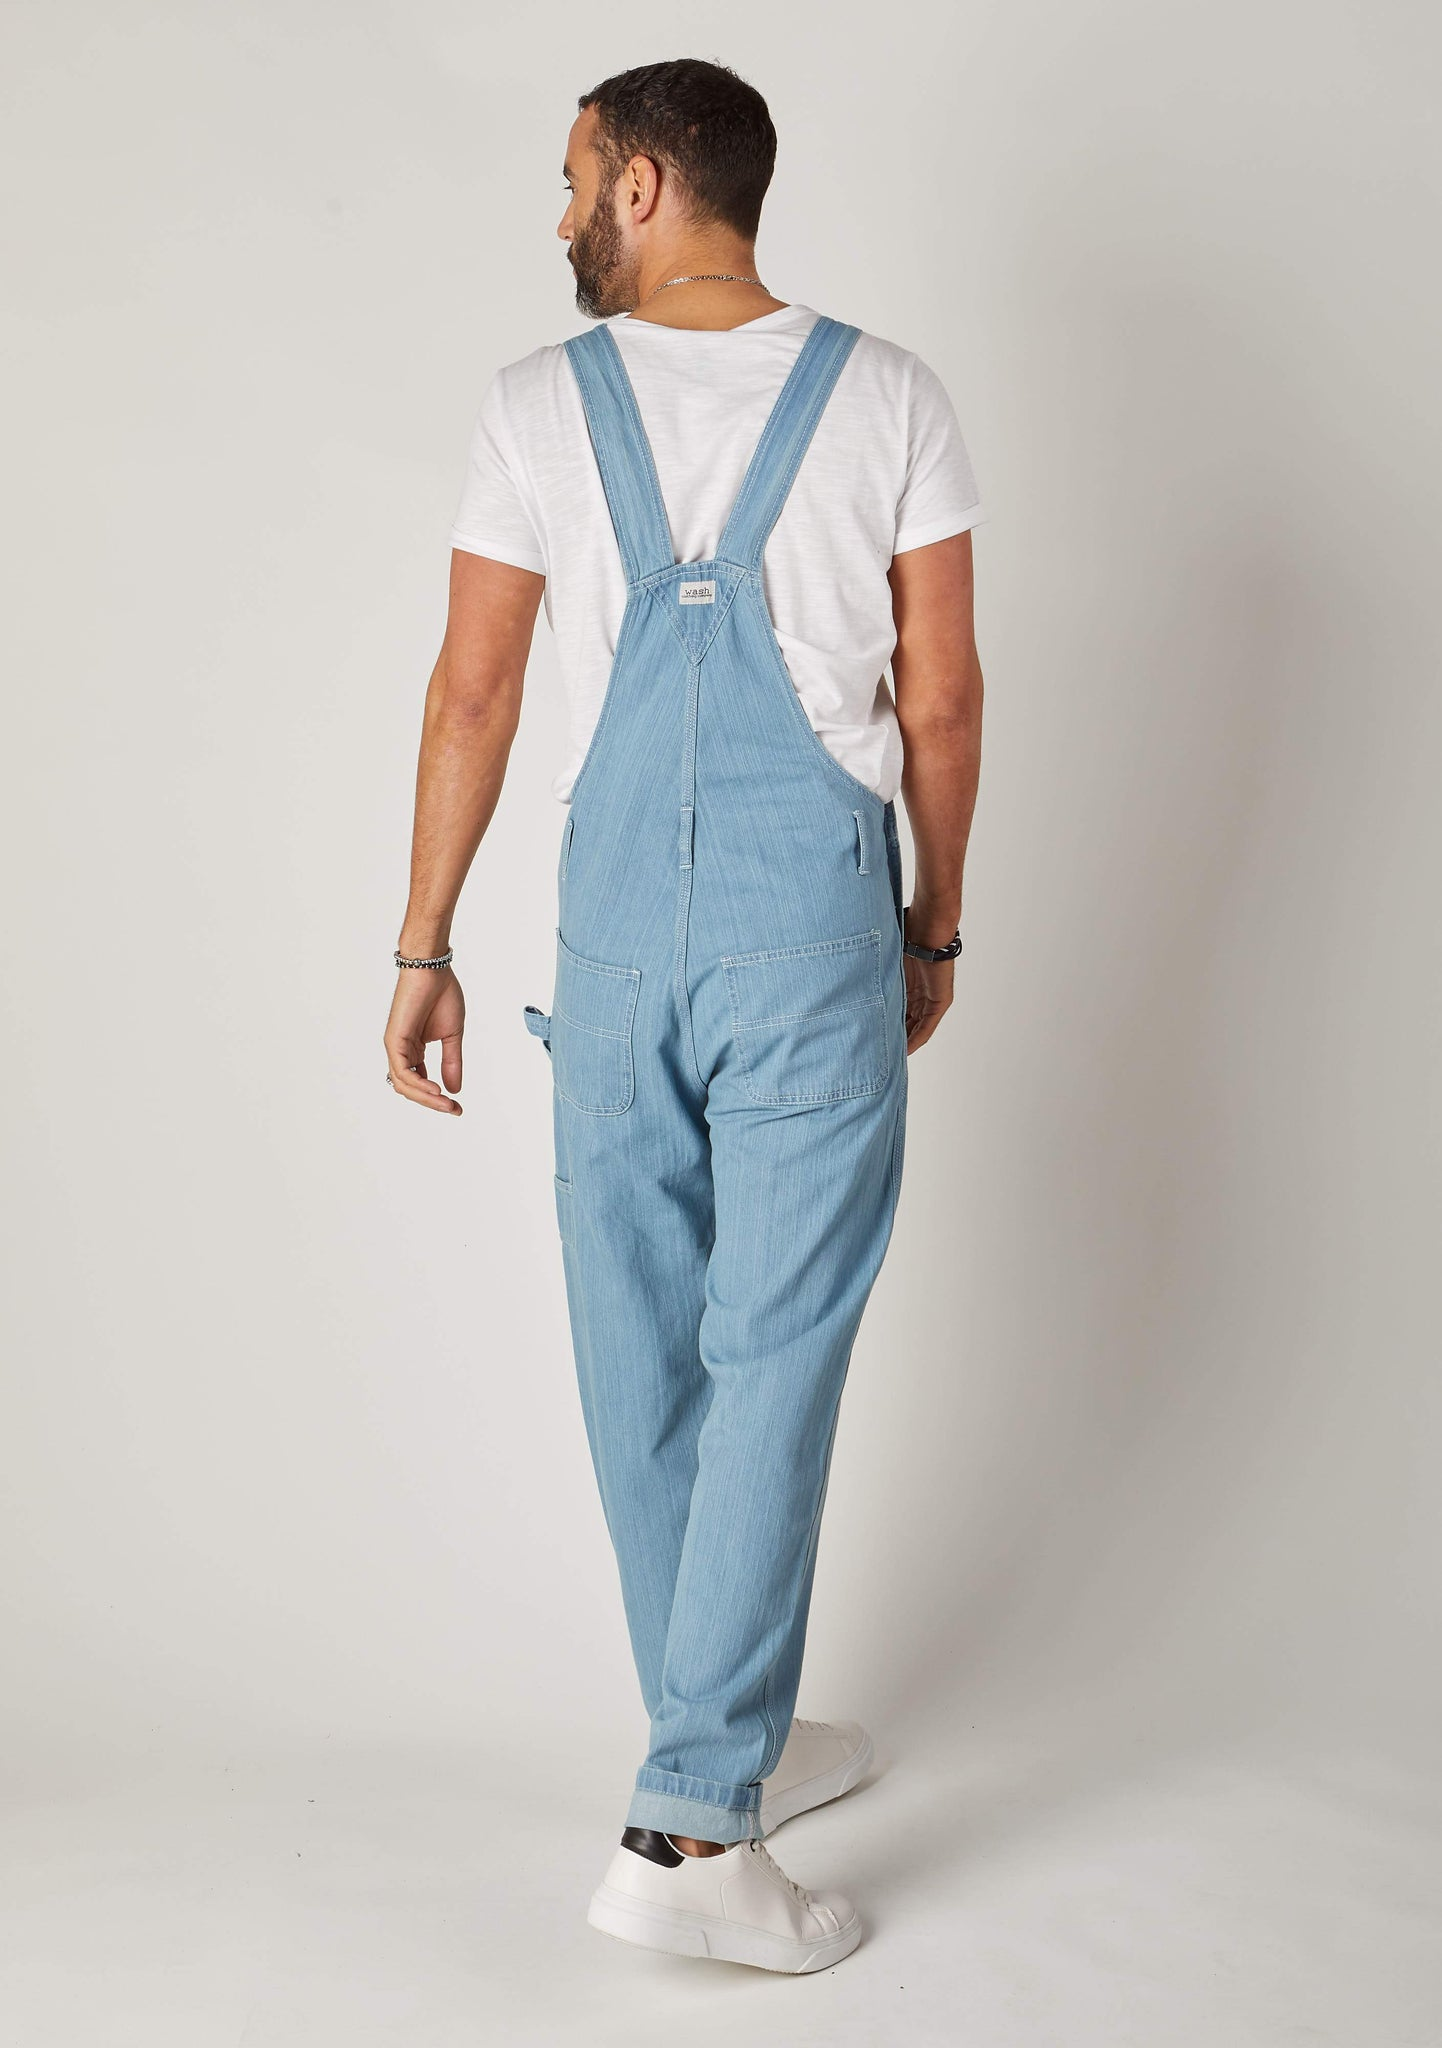 Rear Shot full-length pose mens blue bib-overalls showing back pockets, hammer loop and belt loops.